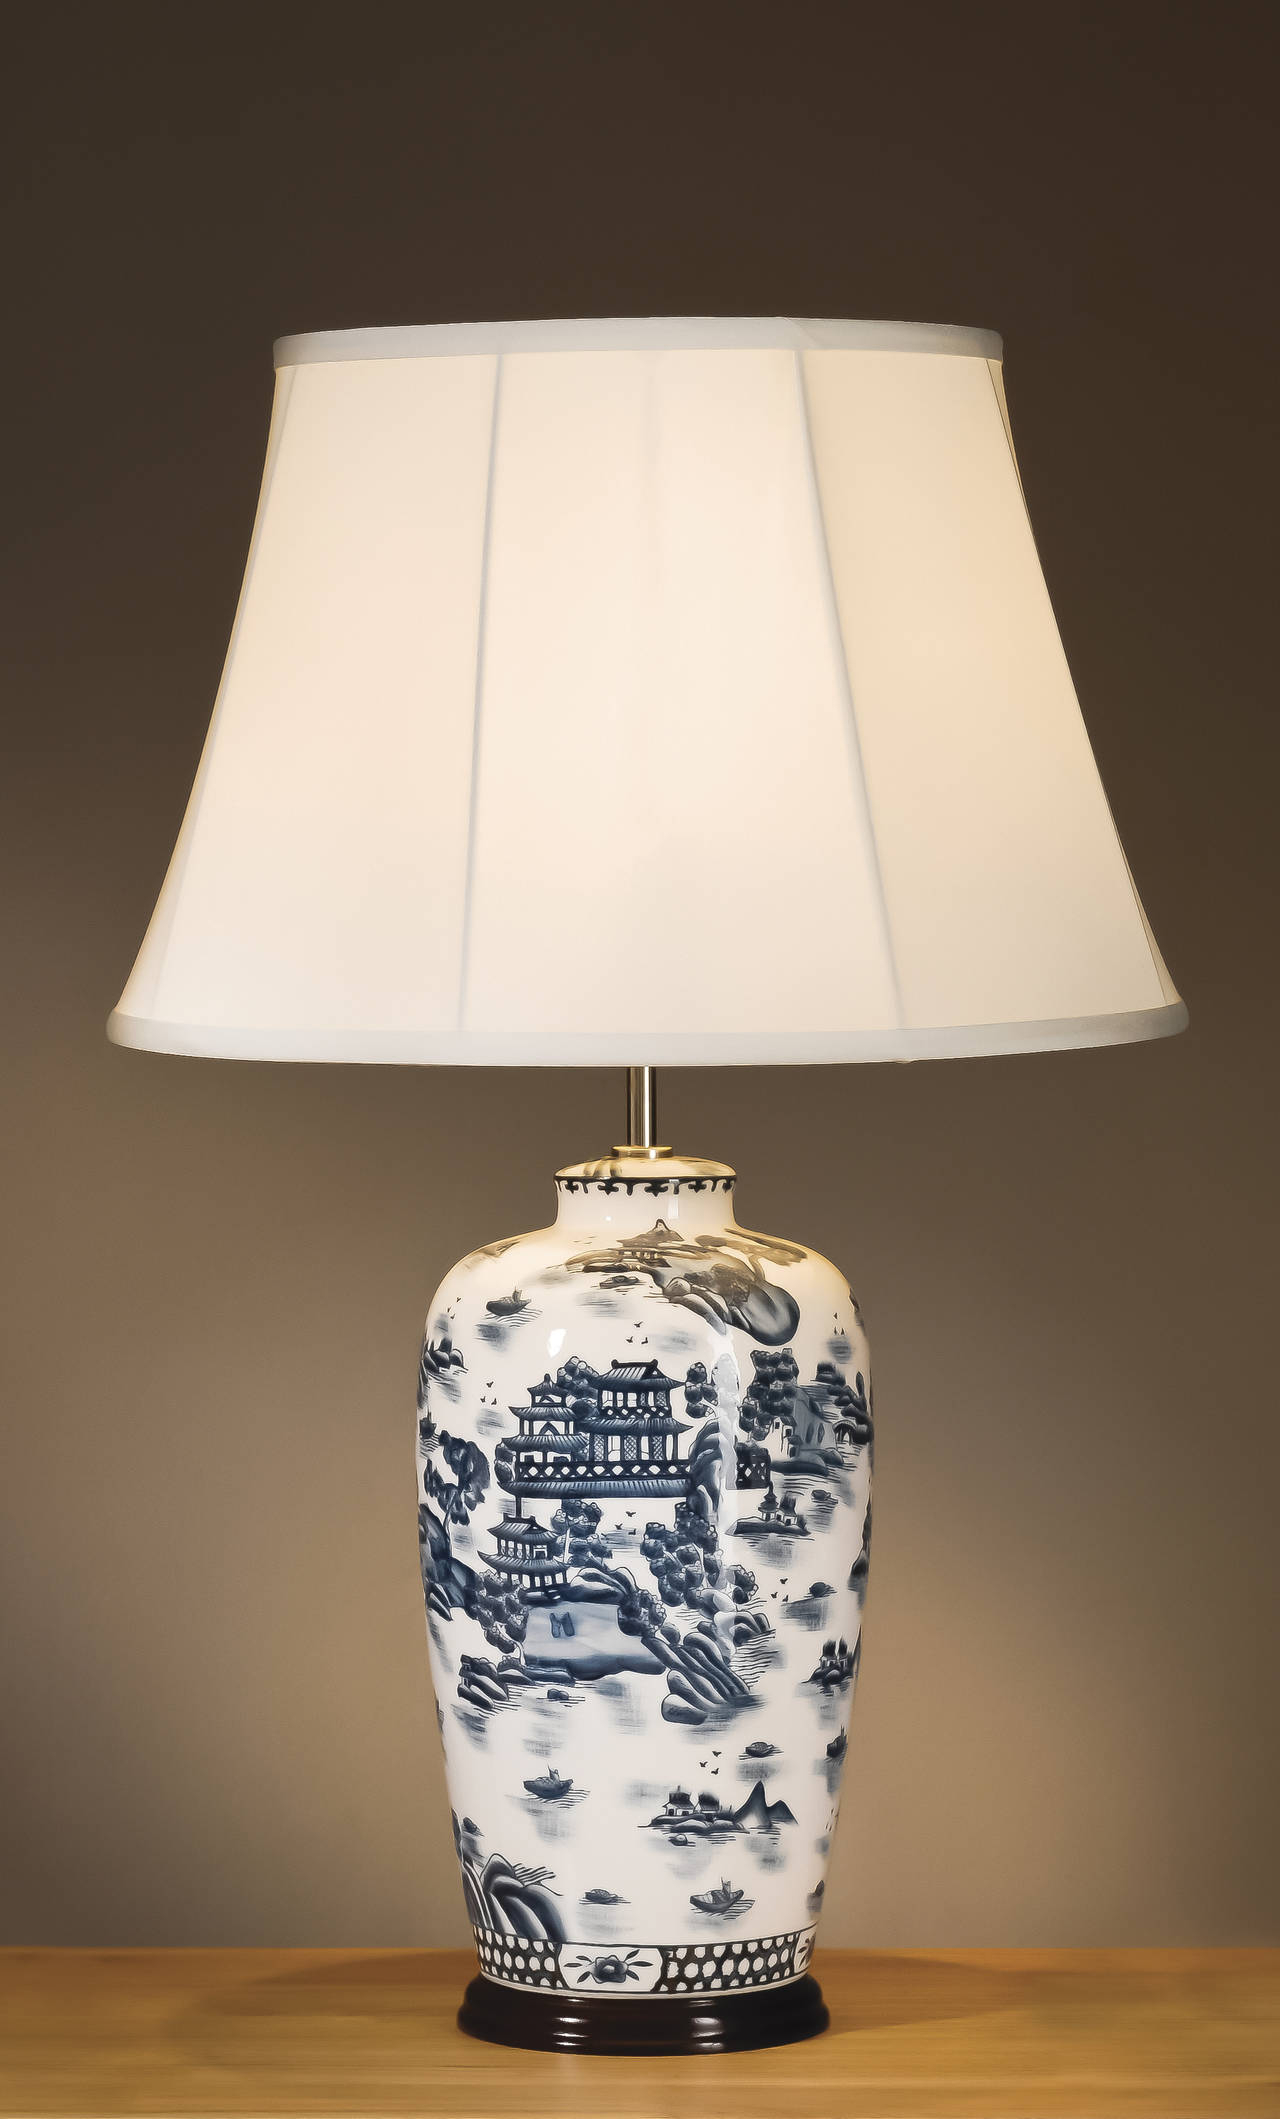 Large Blue White Oriental Ceramic Table Lamp With Shade